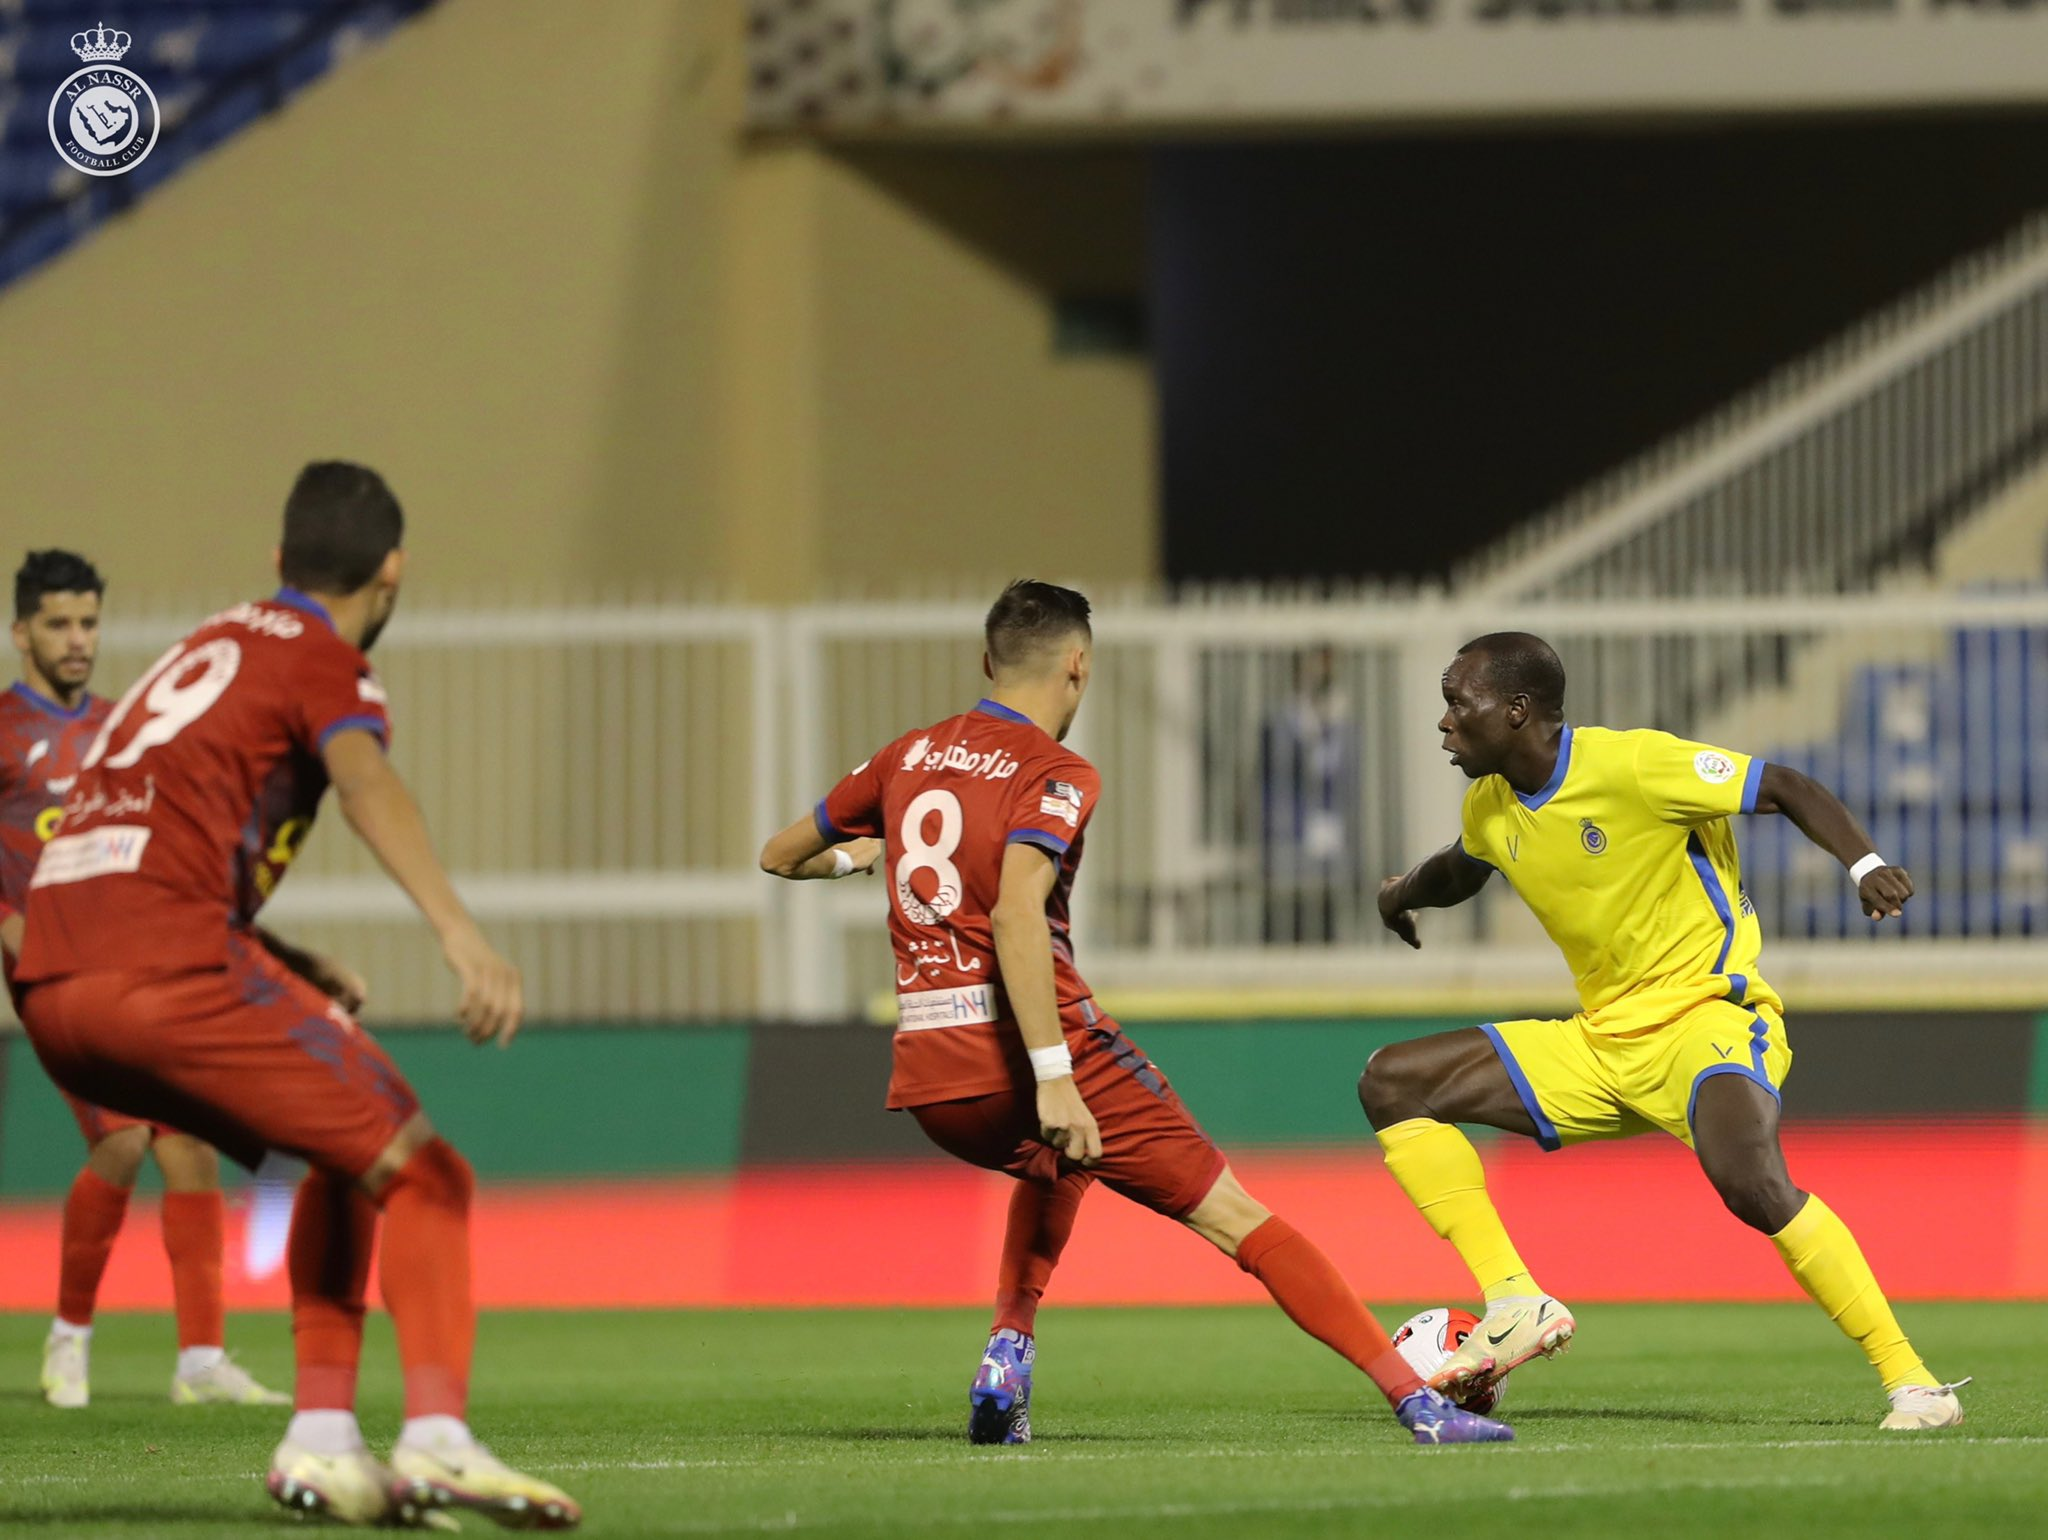 A dangerous attack for victory against Abha